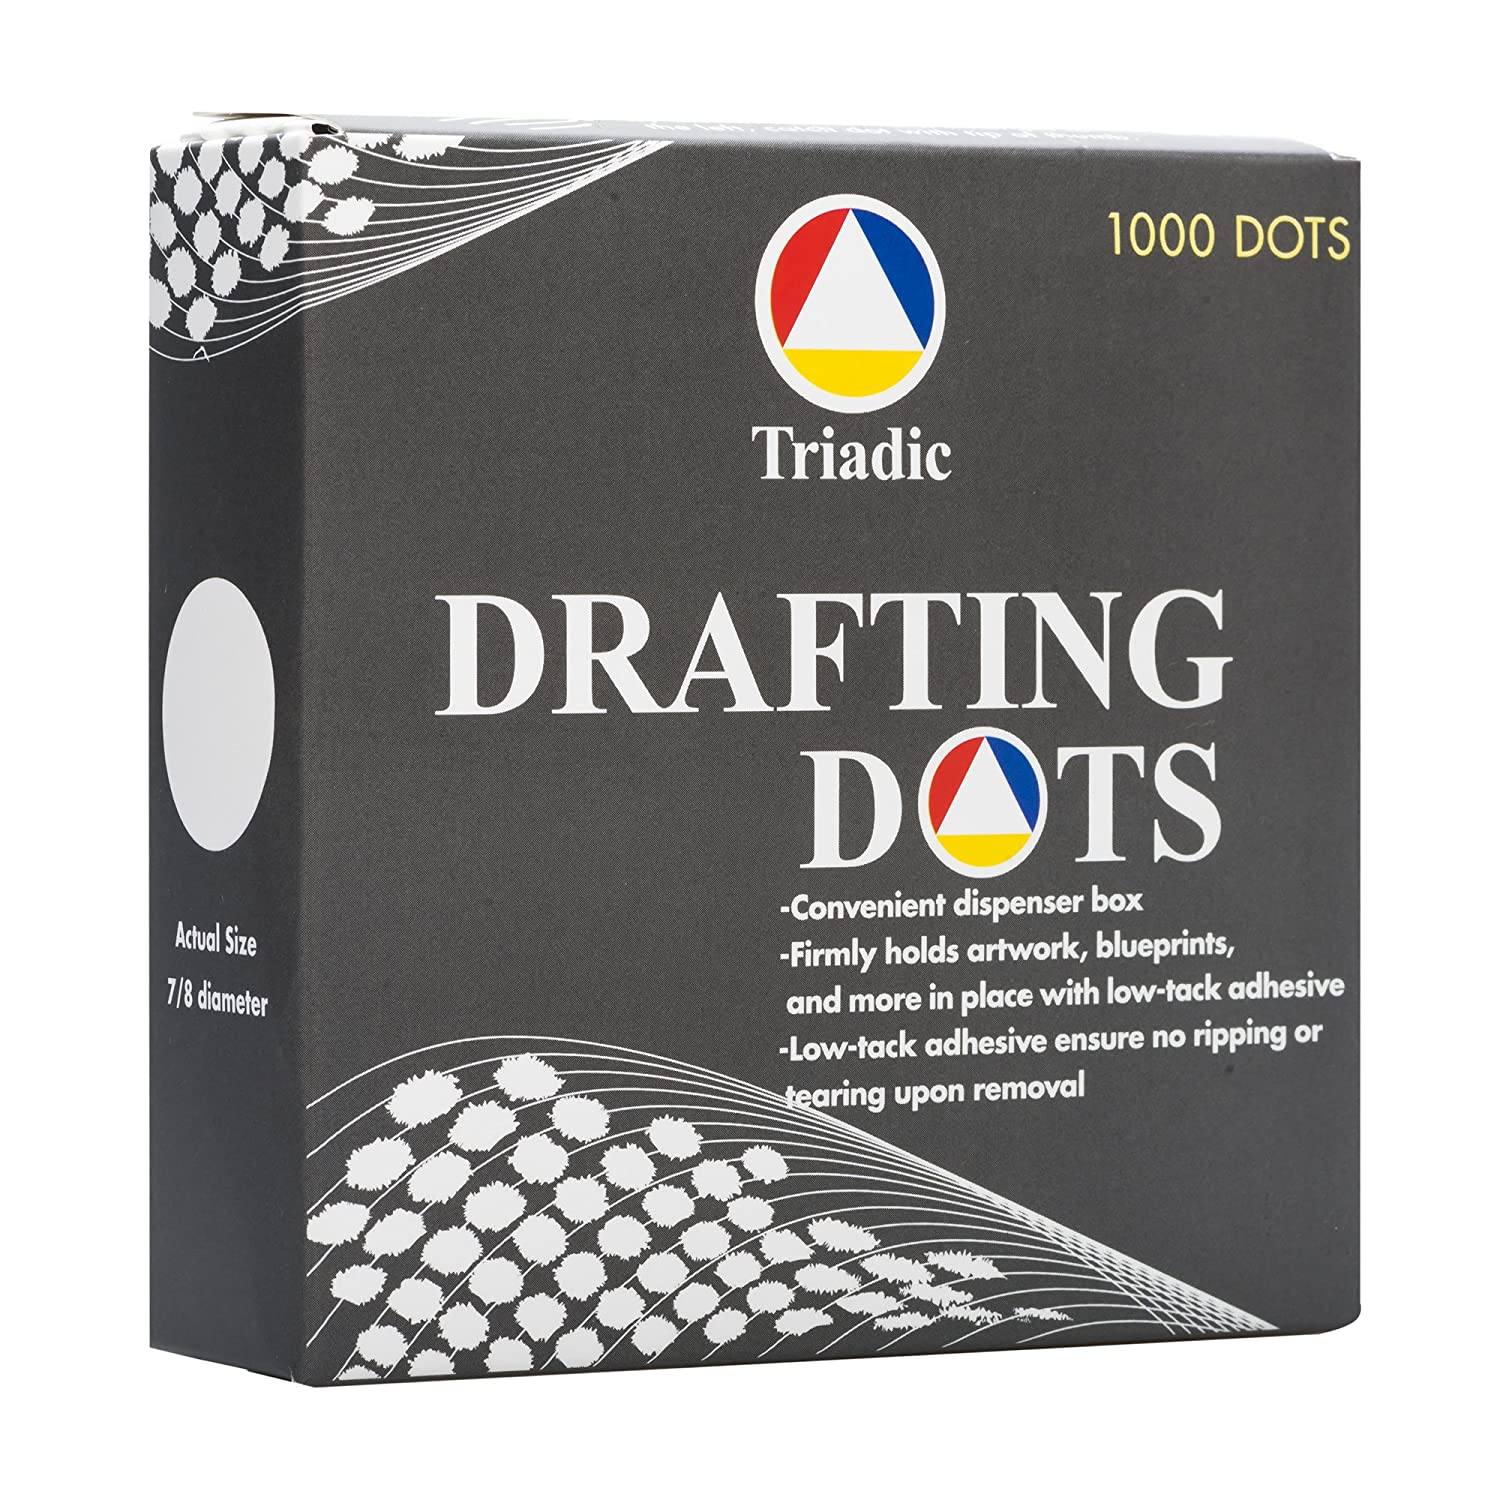 1,000 Triadic Drafting Dots, No Tear, 7/8 Diameter for Artwork, Blueprints, Drafting and More 91Qq73nStiL